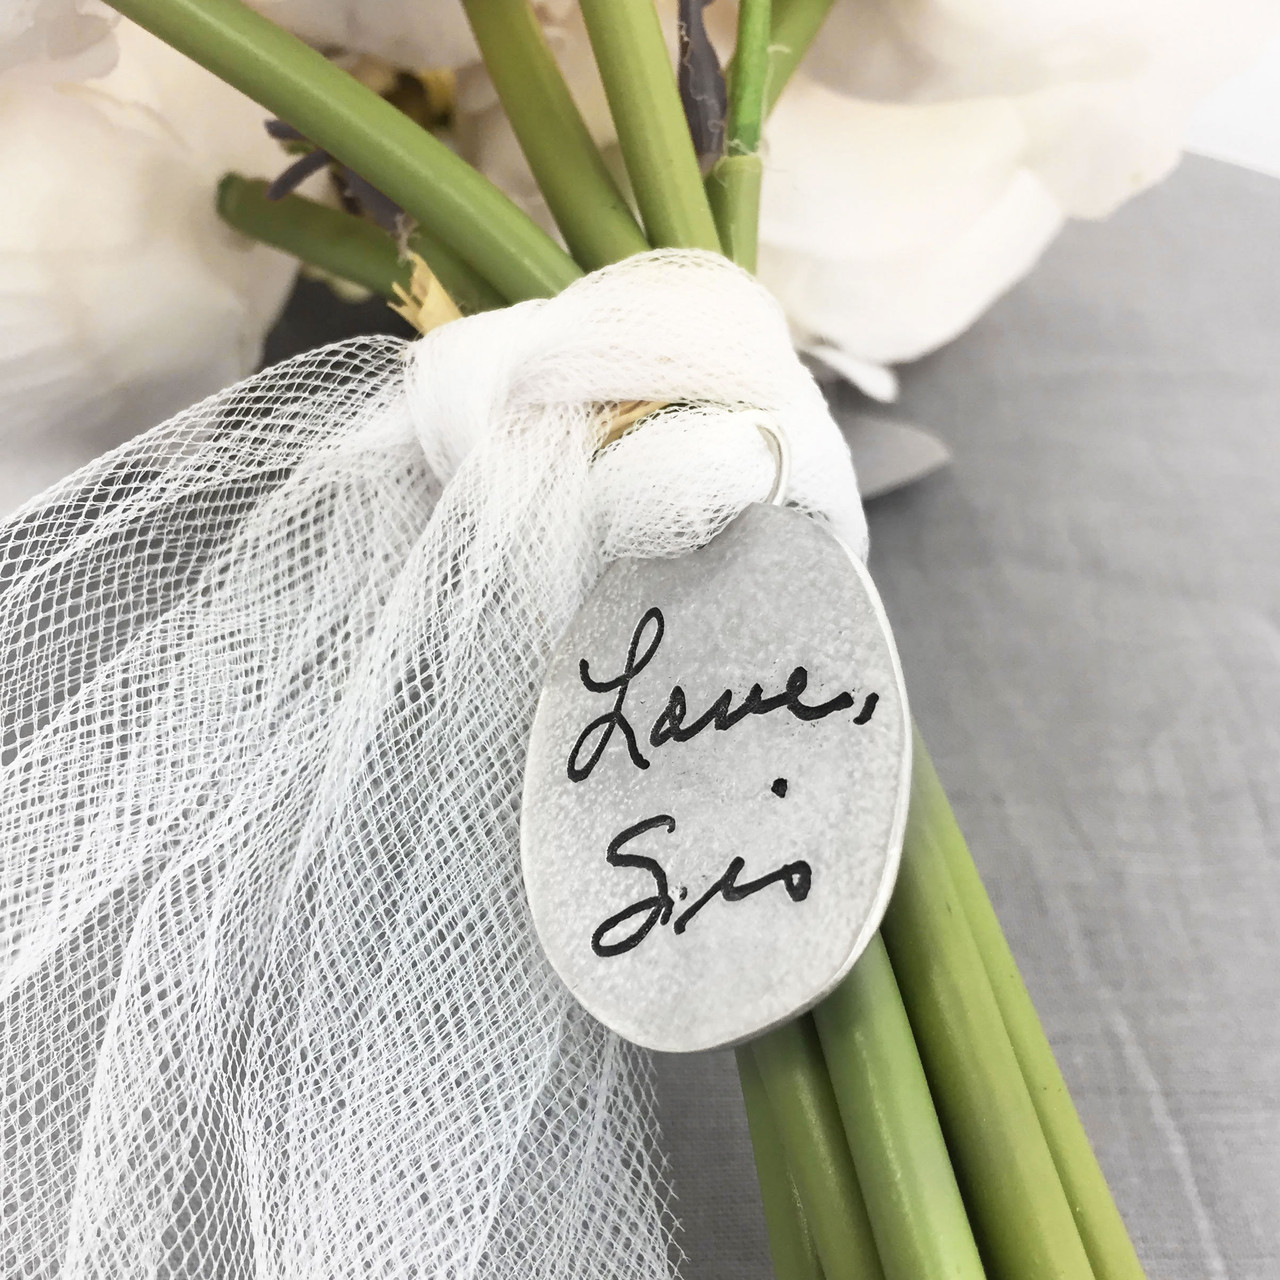 Signature on bouquet charm with cross